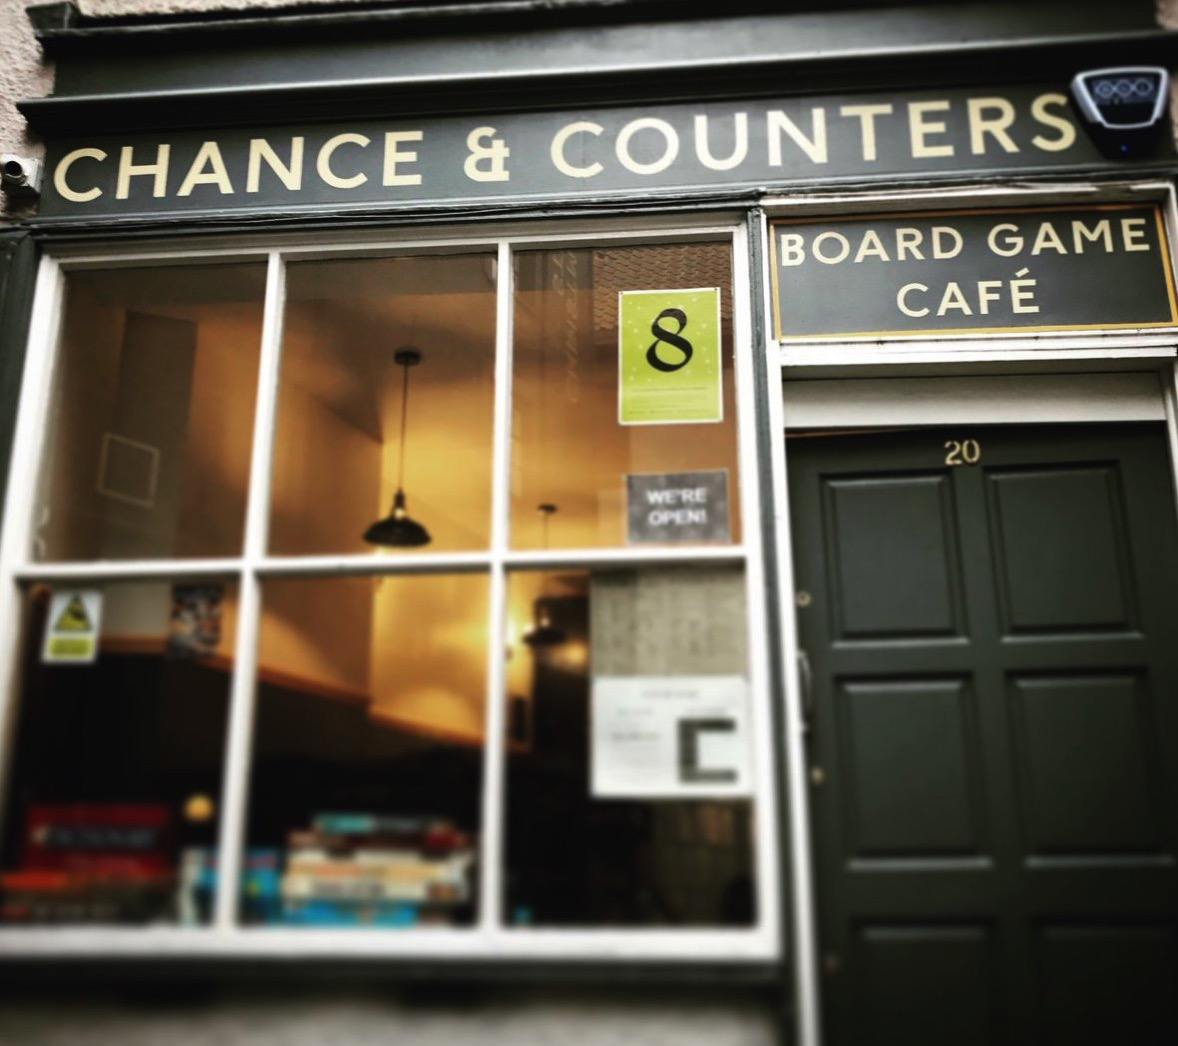 Chance & Counters board game cafe